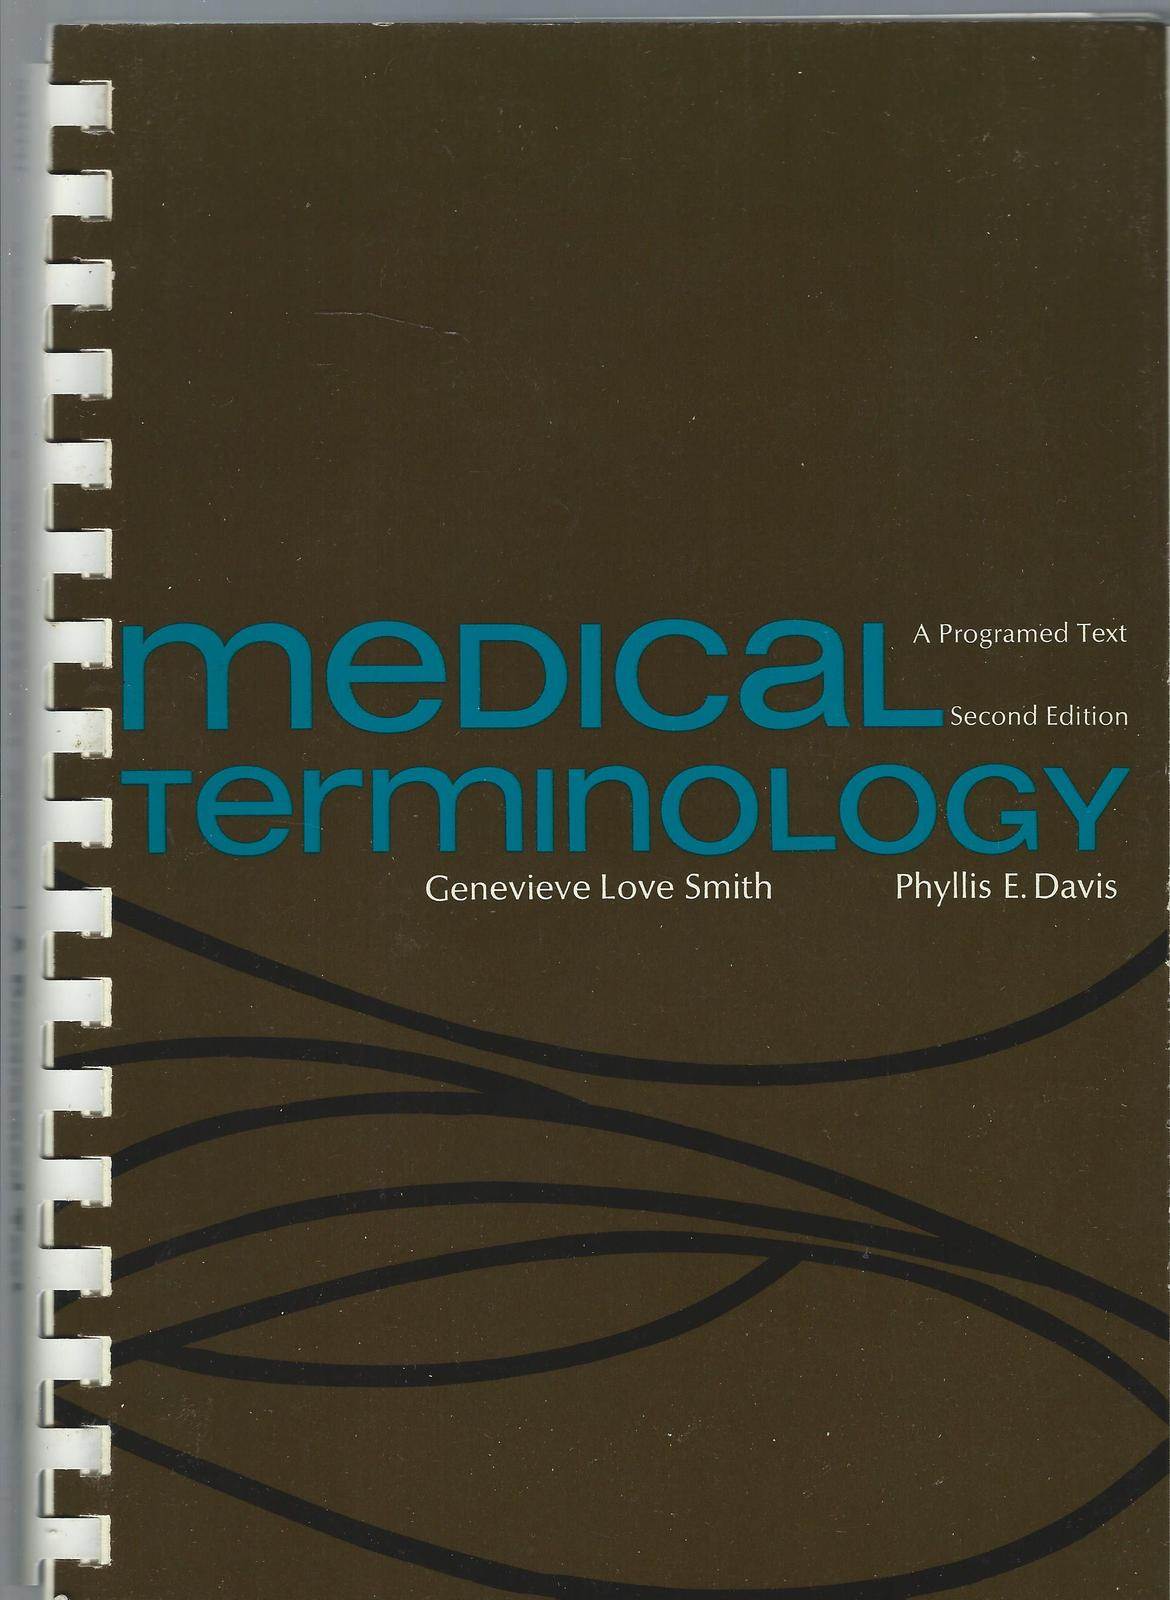 MEDICAL TERMINOLOGY:A PROGRAMED TEXT,2ND ED.,SPIRAL BOUND;Genevieve Love Smith